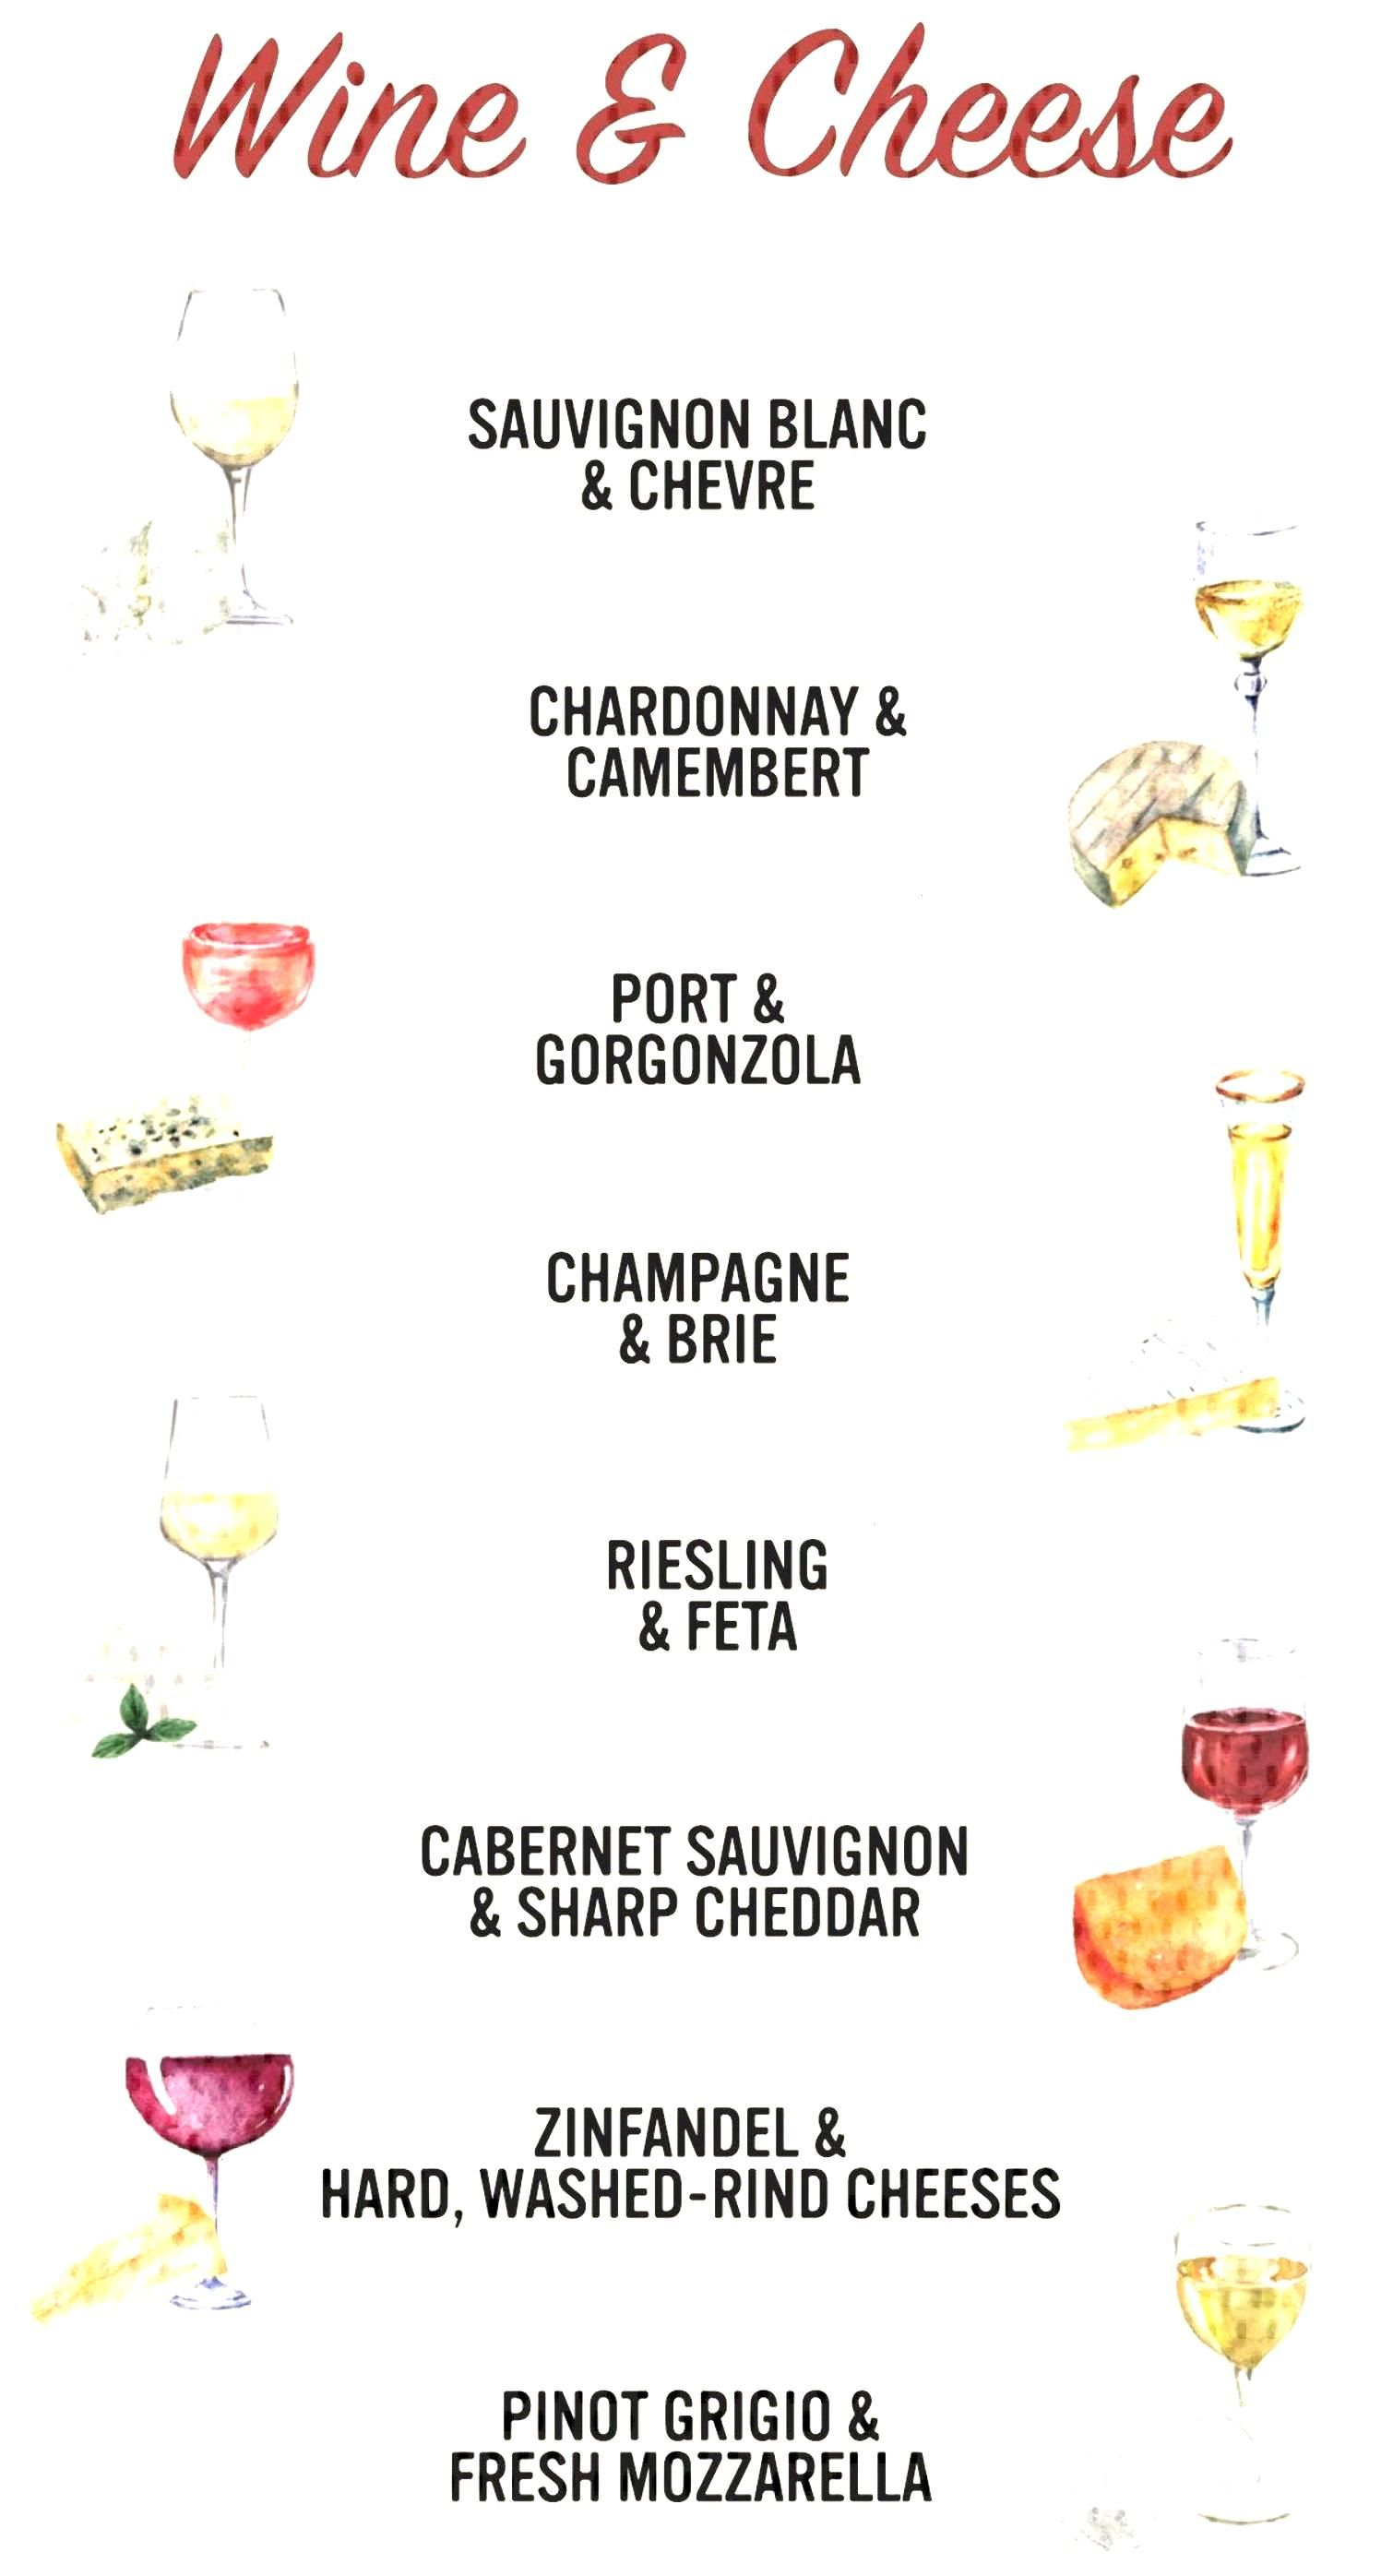 With these simple tips, you will feel like a true sommelier at your next gathering. Pairing wine an